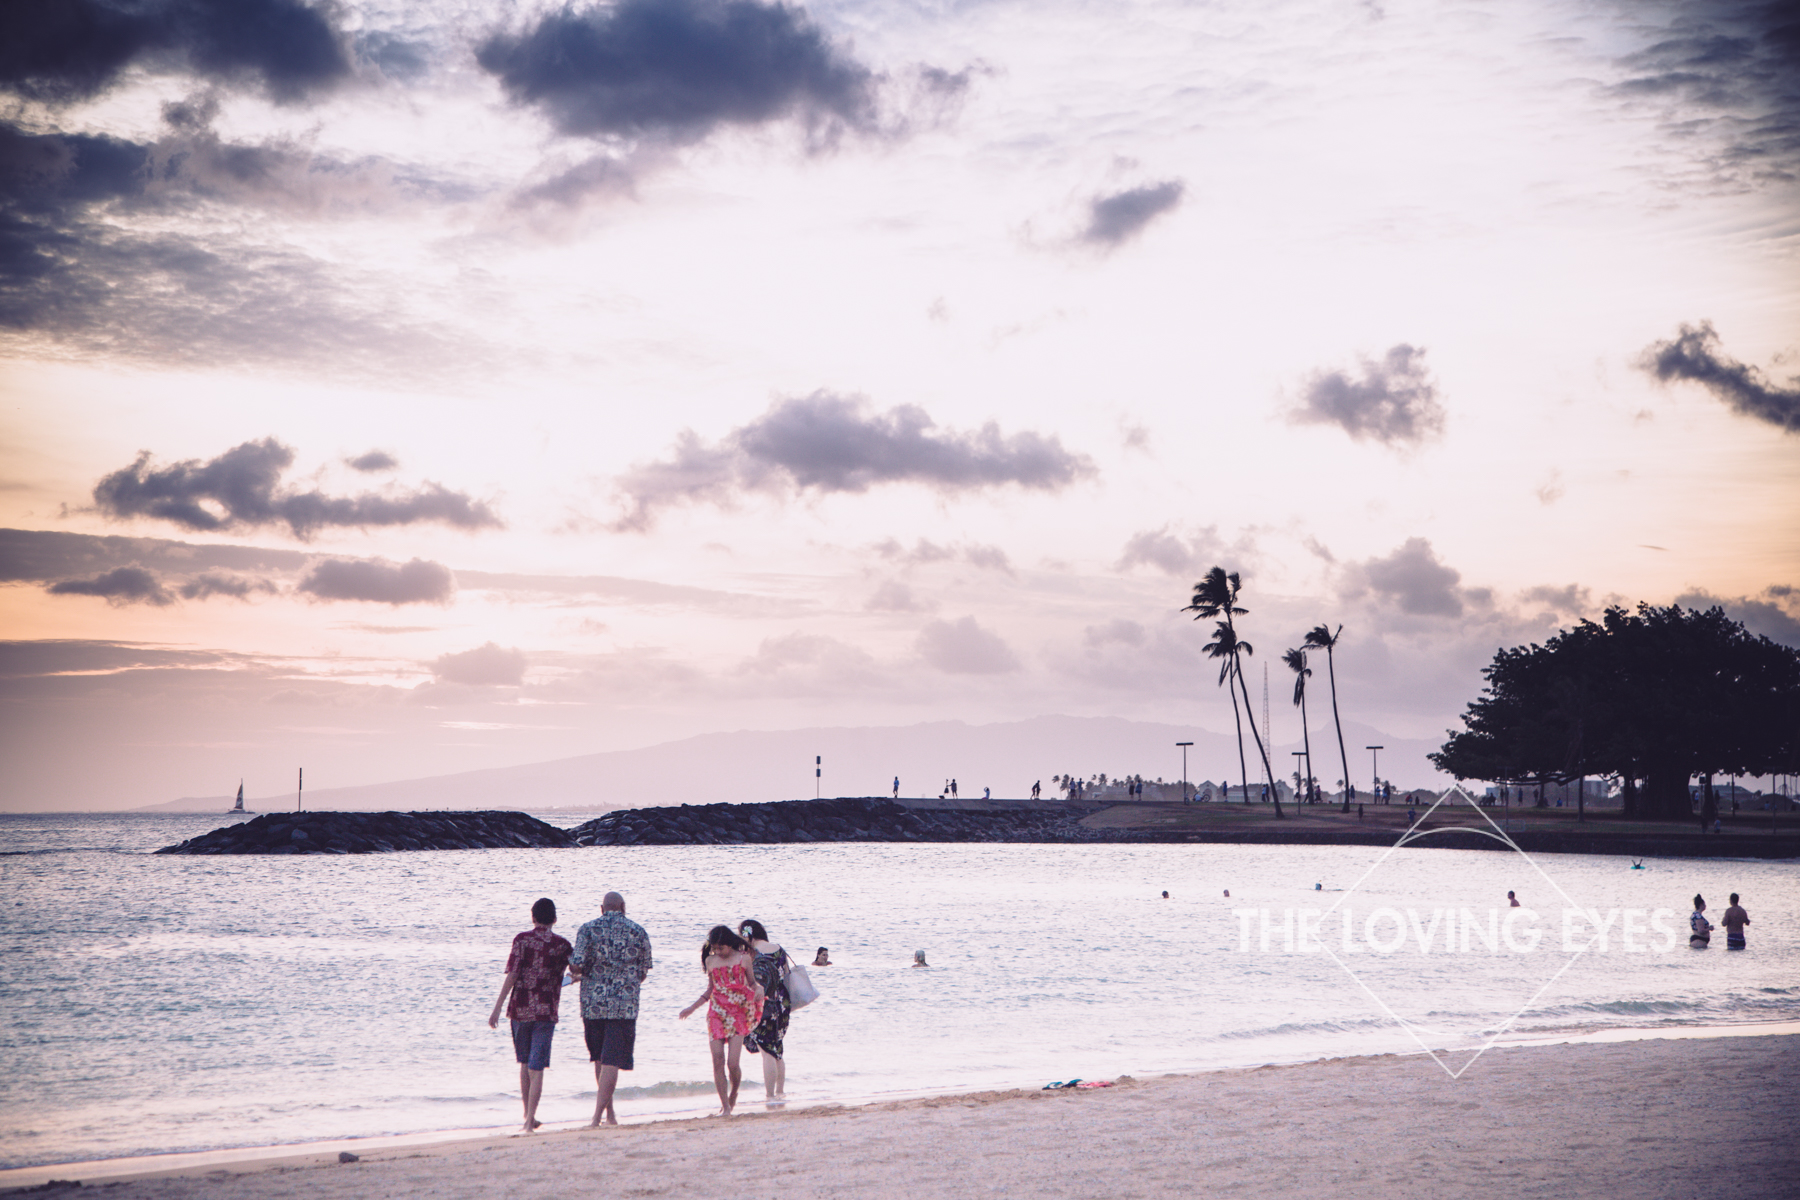 Family vacation portrait on the beach during sunset at Ala Moana Beach Park in Hawaii